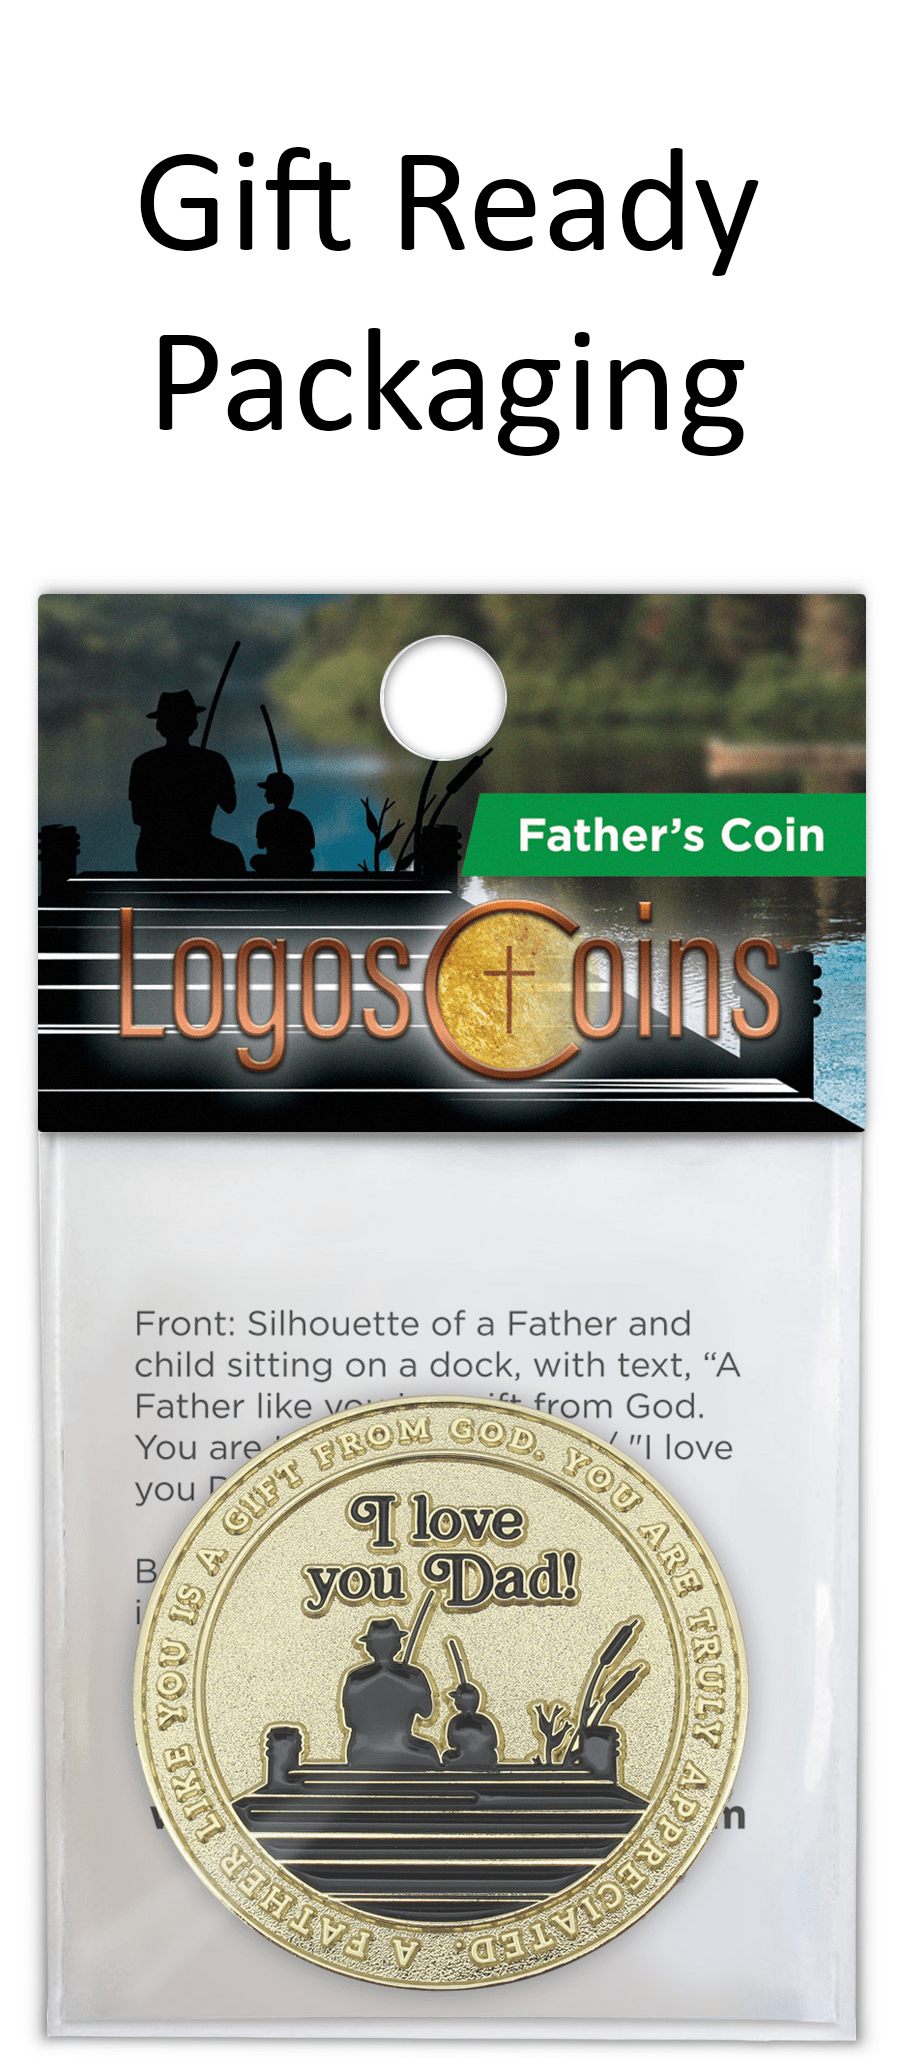 Father's Coin, I Love You Dad Token of Appreciation, Gold Plated Challenge Coin, Proverbs 20:7 Pocket Coin Gift for Men, Unique Gift Idea for Dads and Grandfathers, from Daughter, sons or Wife.